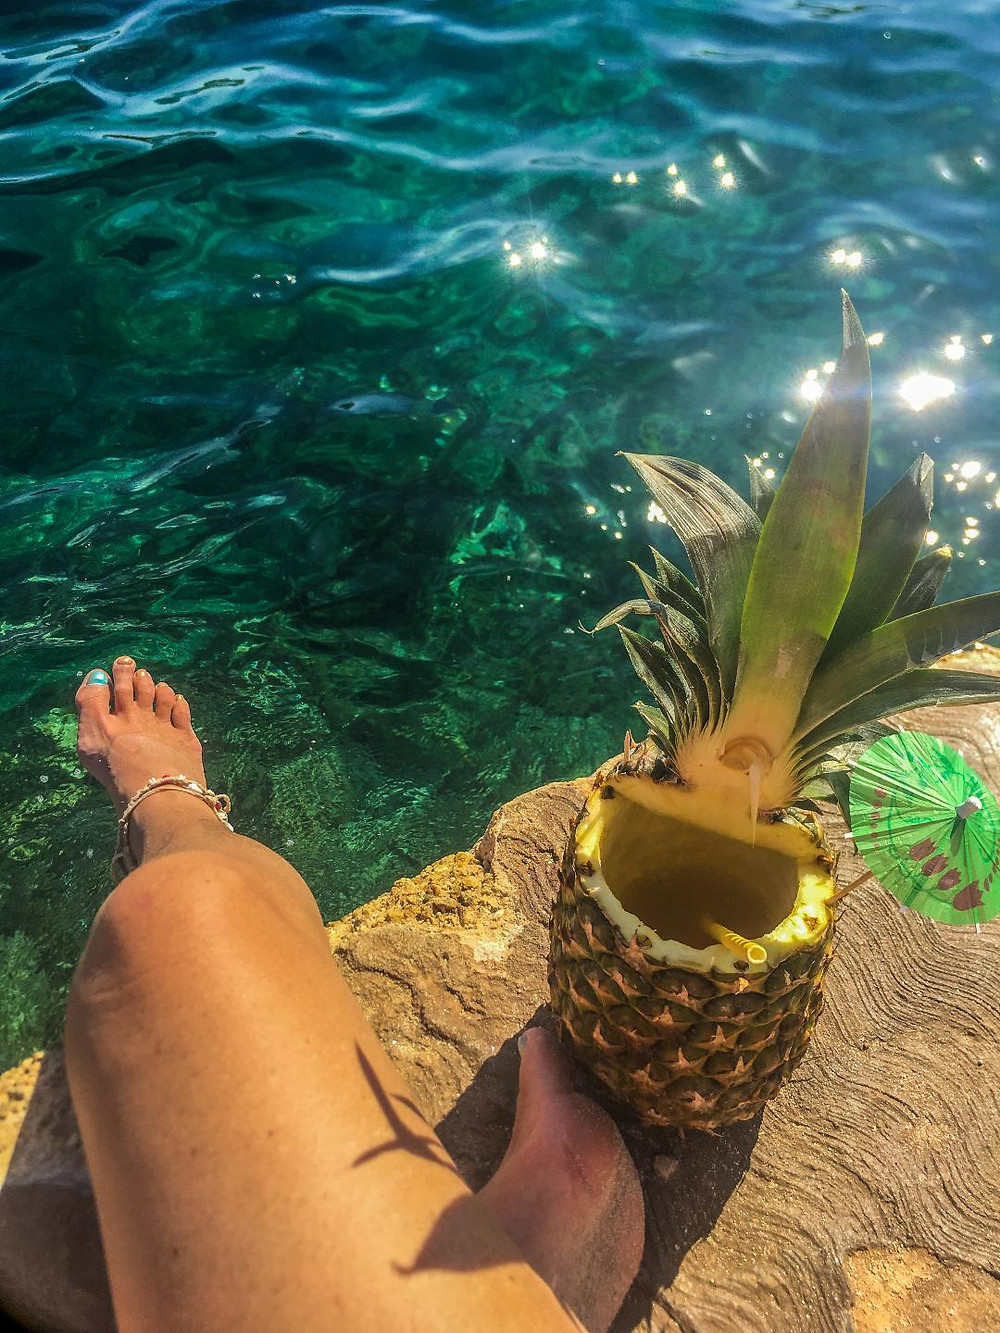 Cocktail within a pineapple with umbrella